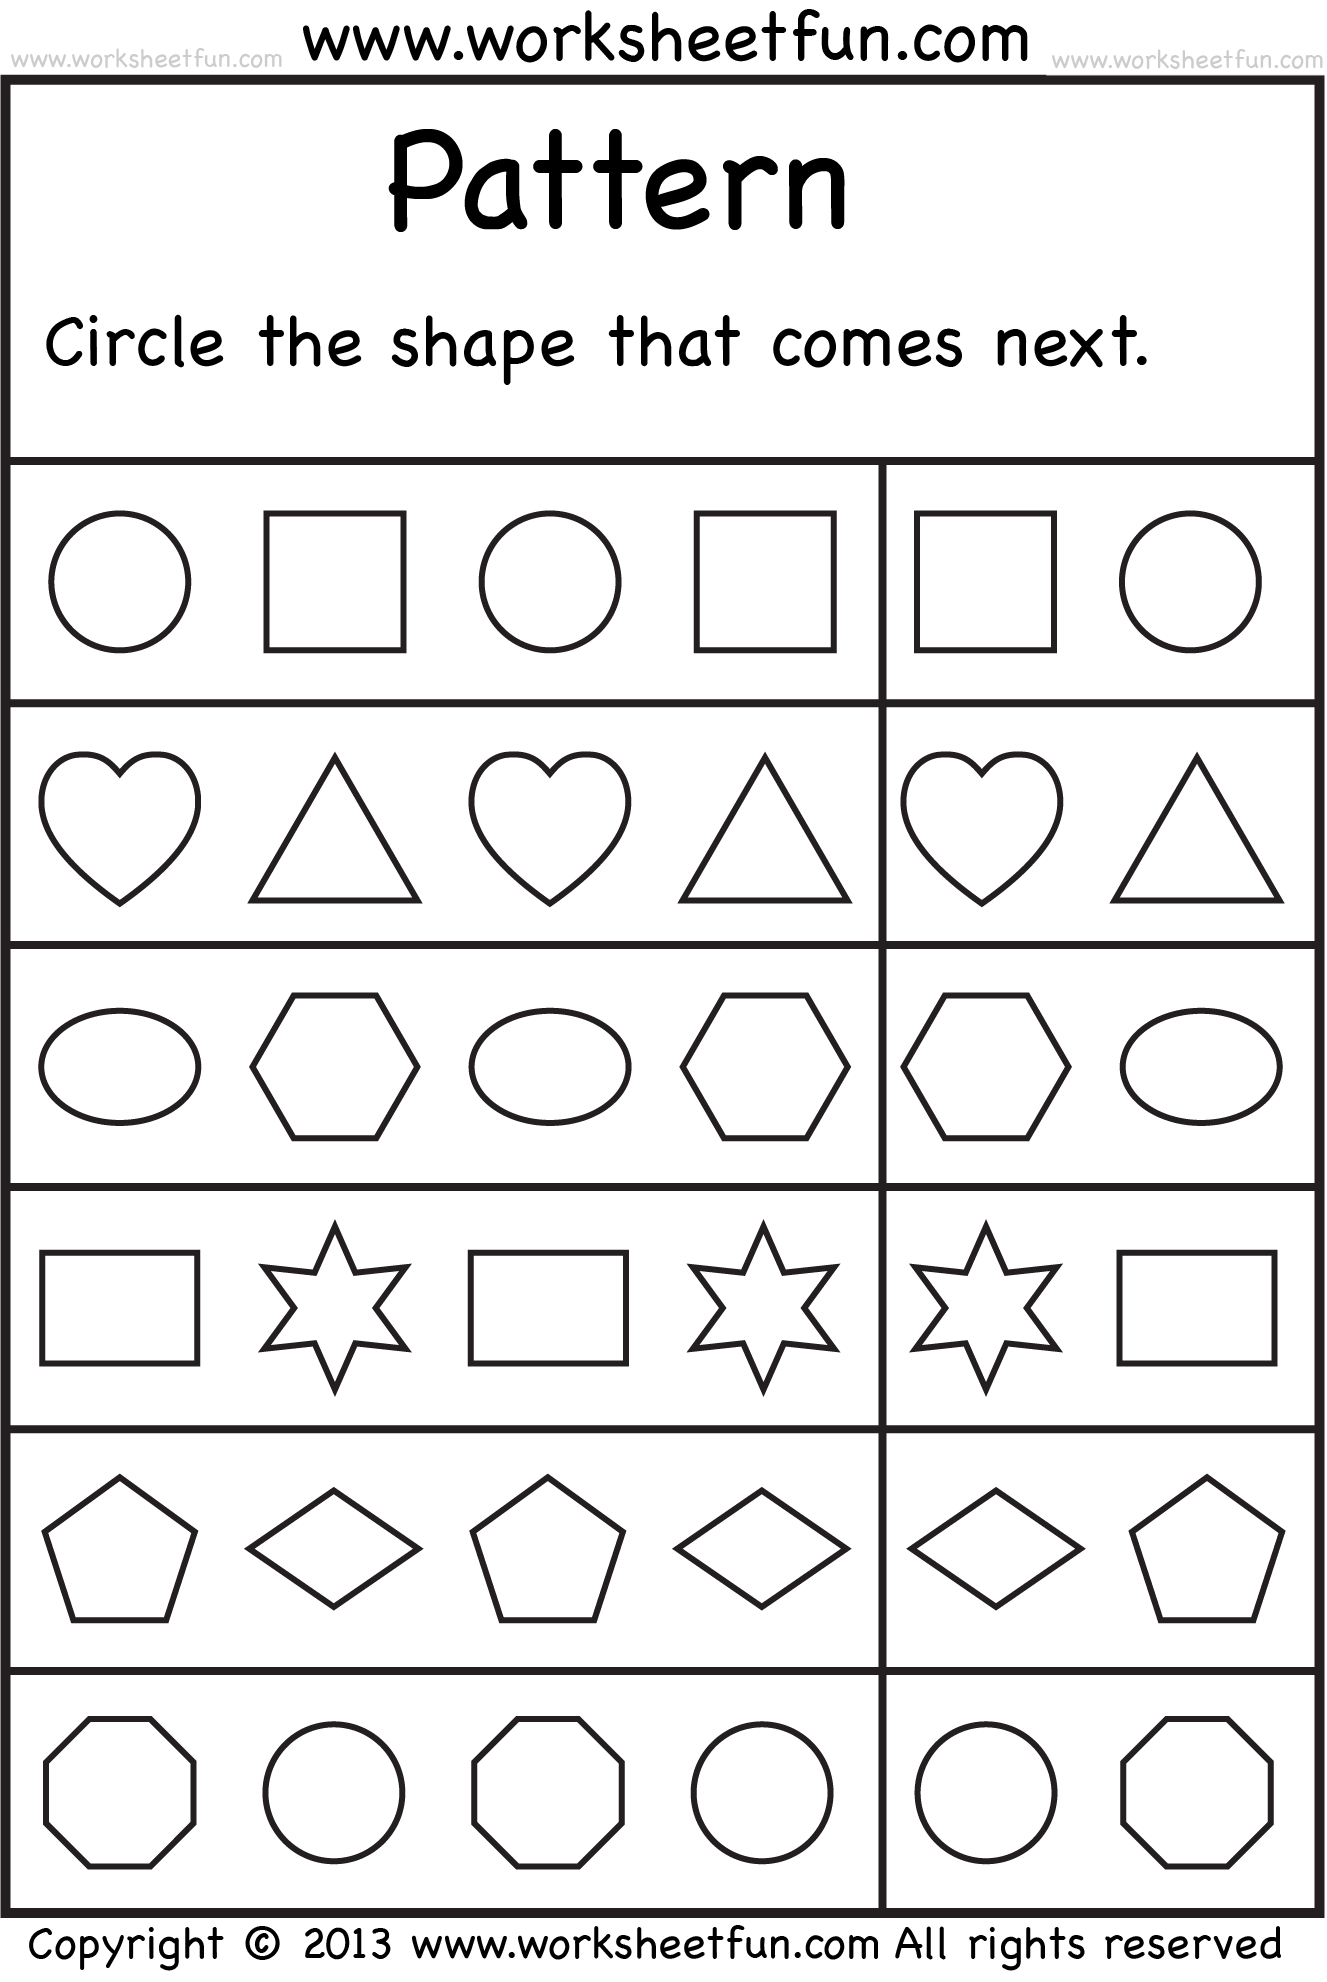 Weirdmailus  Sweet  Images About School Worksheets On Pinterest  Number Words  With Remarkable  Images About School Worksheets On Pinterest  Number Words Alphabet Worksheets And Free Printable Kindergarten Worksheets With Attractive Vba Excel Copy Worksheet Also Fever  Worksheets In Addition The Mad Minute Math Worksheets And Direct Object Indirect Object Worksheet As Well As Proper Noun Worksheets St Grade Additionally Critical Reading Worksheet From Pinterestcom With Weirdmailus  Remarkable  Images About School Worksheets On Pinterest  Number Words  With Attractive  Images About School Worksheets On Pinterest  Number Words Alphabet Worksheets And Free Printable Kindergarten Worksheets And Sweet Vba Excel Copy Worksheet Also Fever  Worksheets In Addition The Mad Minute Math Worksheets From Pinterestcom